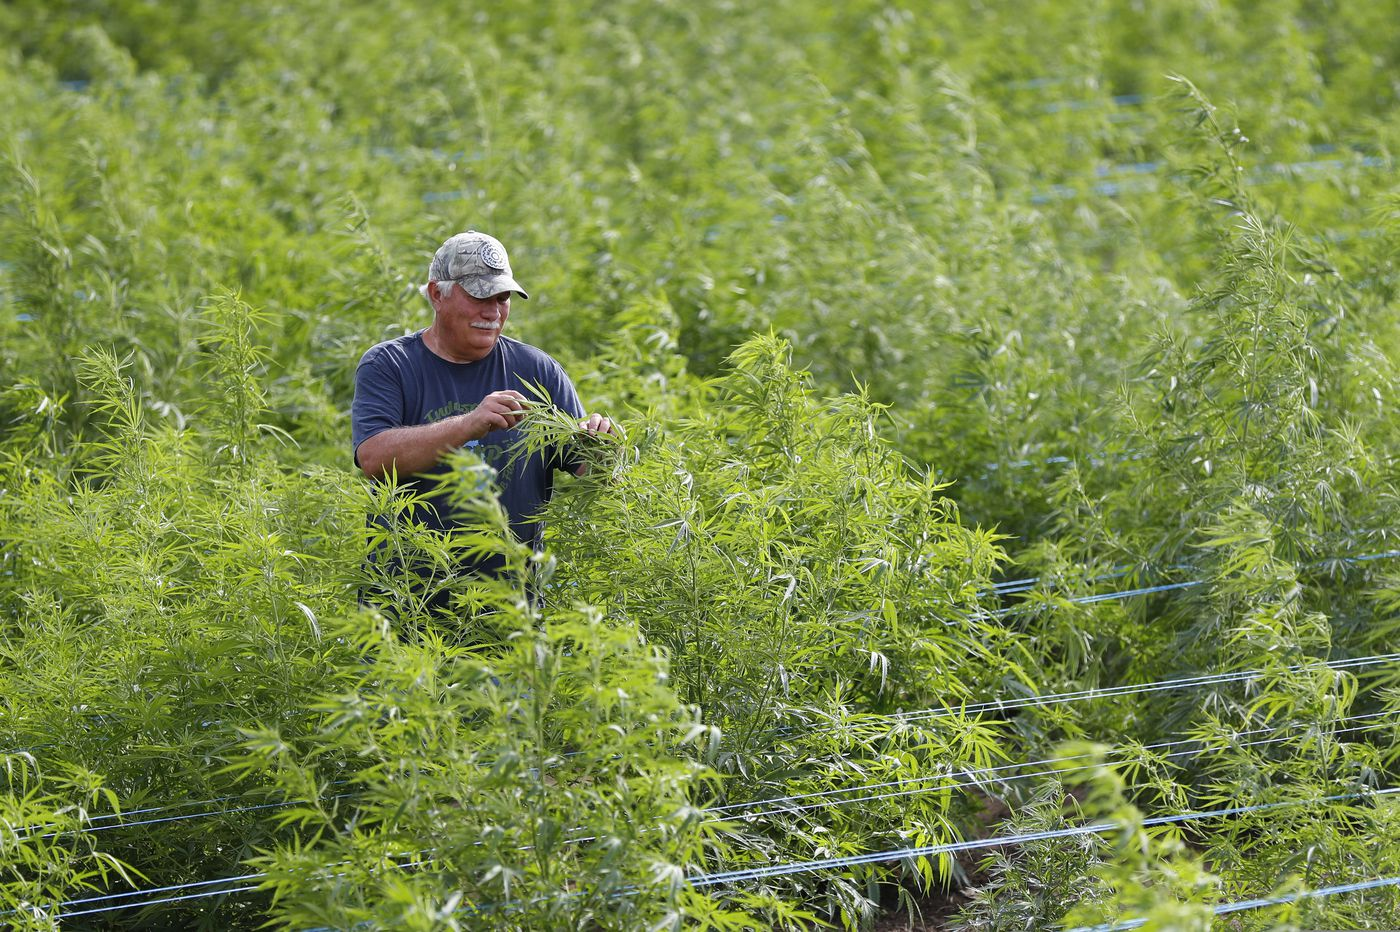 Coming soon: 'Jersey Fresh' hemp. Anyone with a permit can farm it.